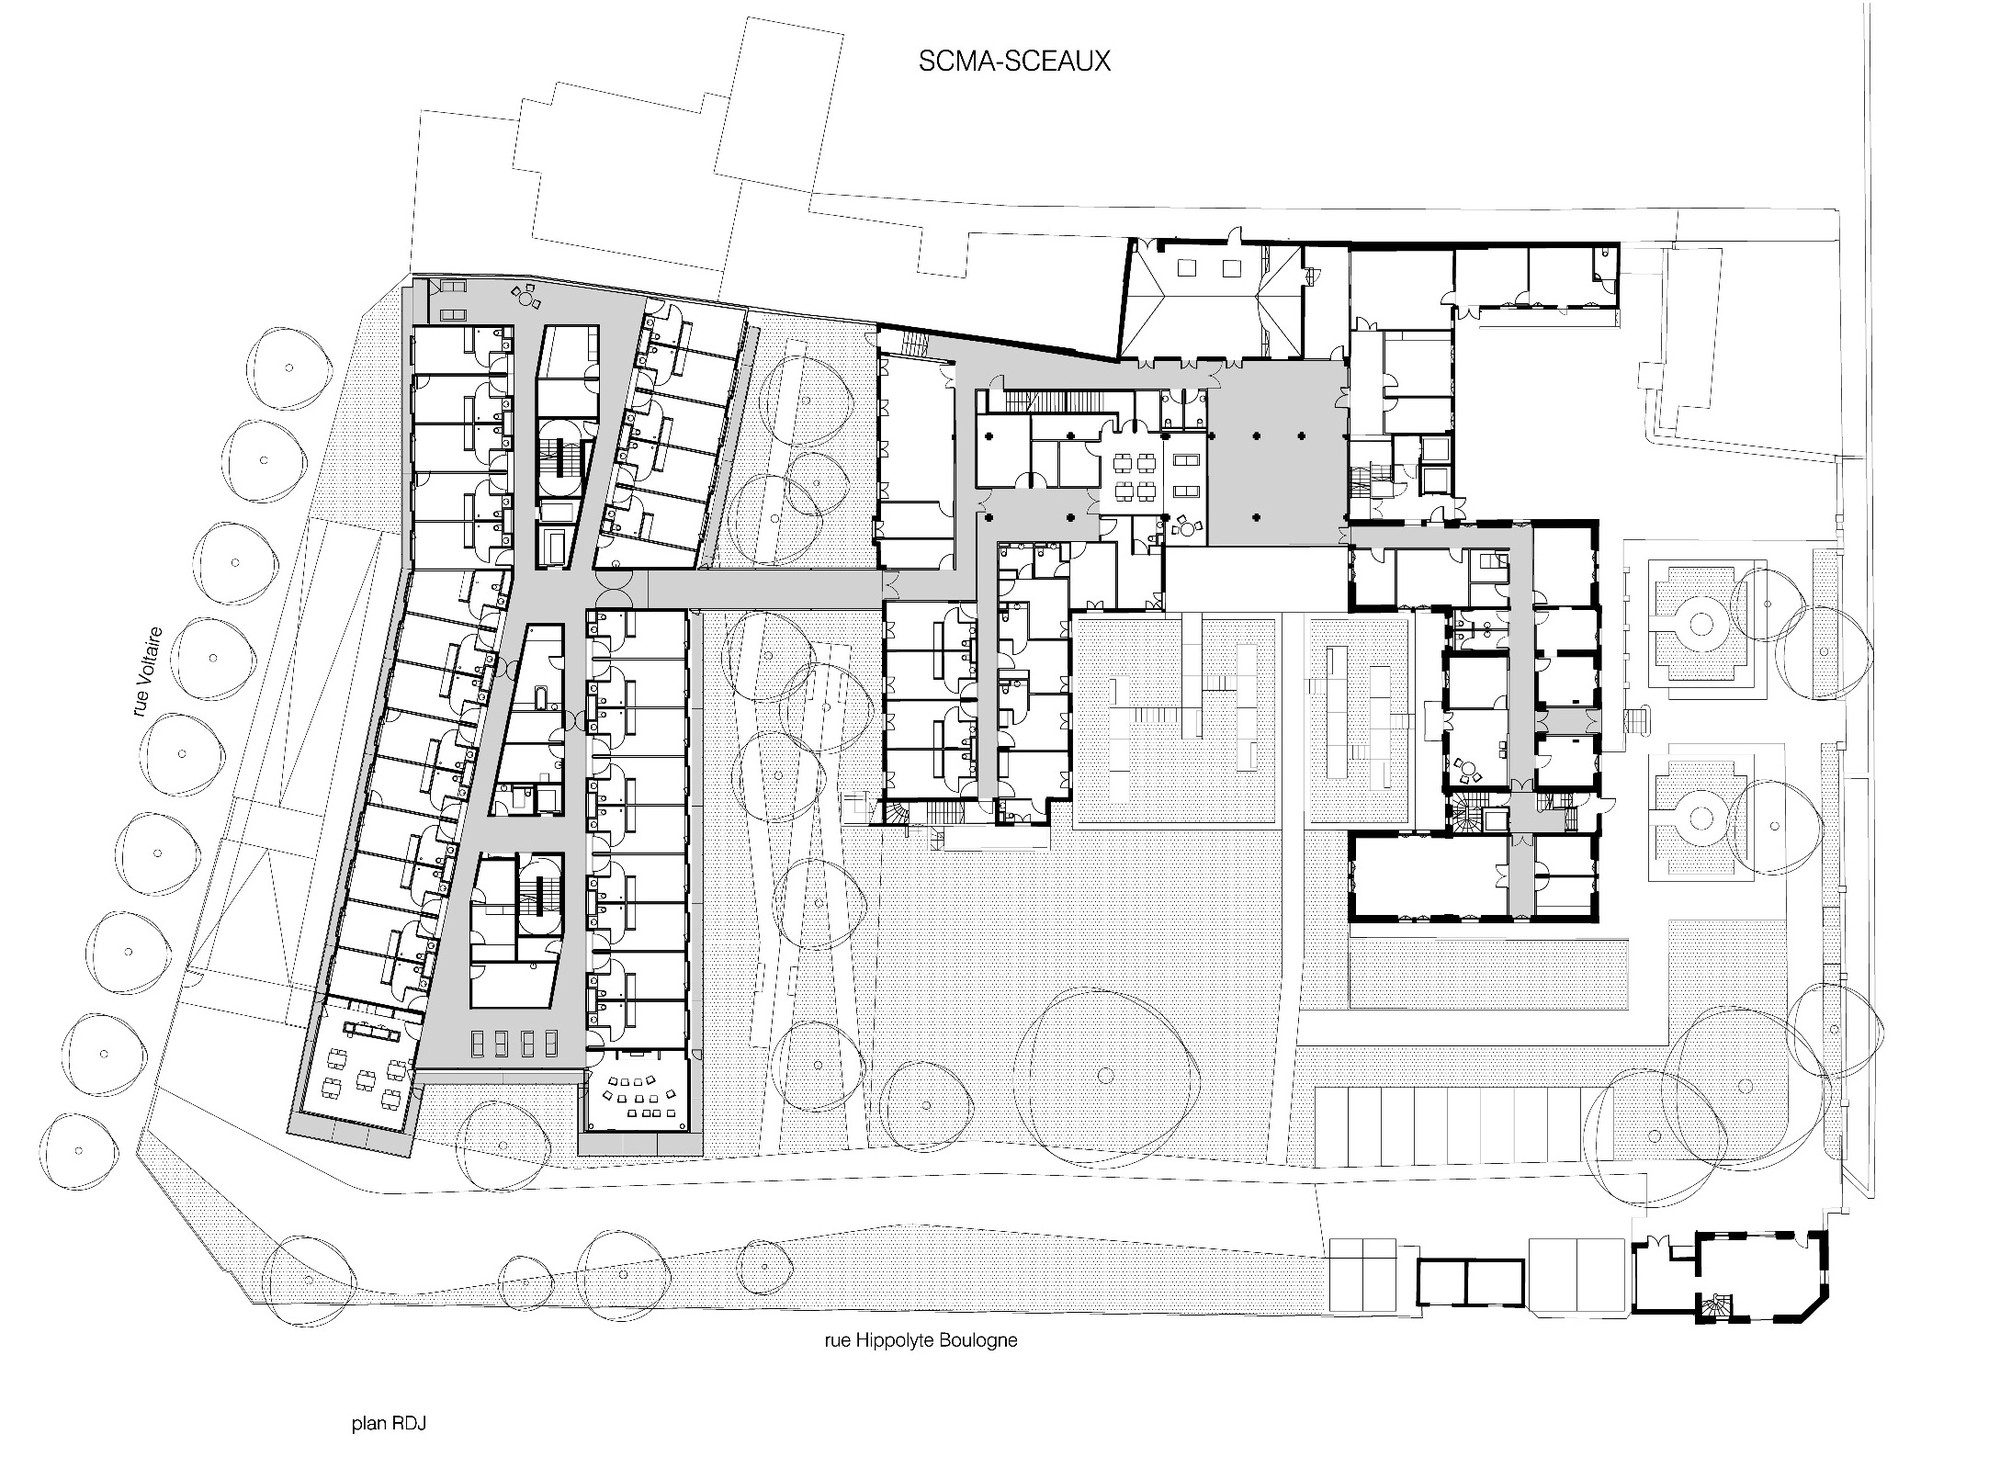 architecture floor plans gallery of maison de retraite philippe dubus architecte 20 10172